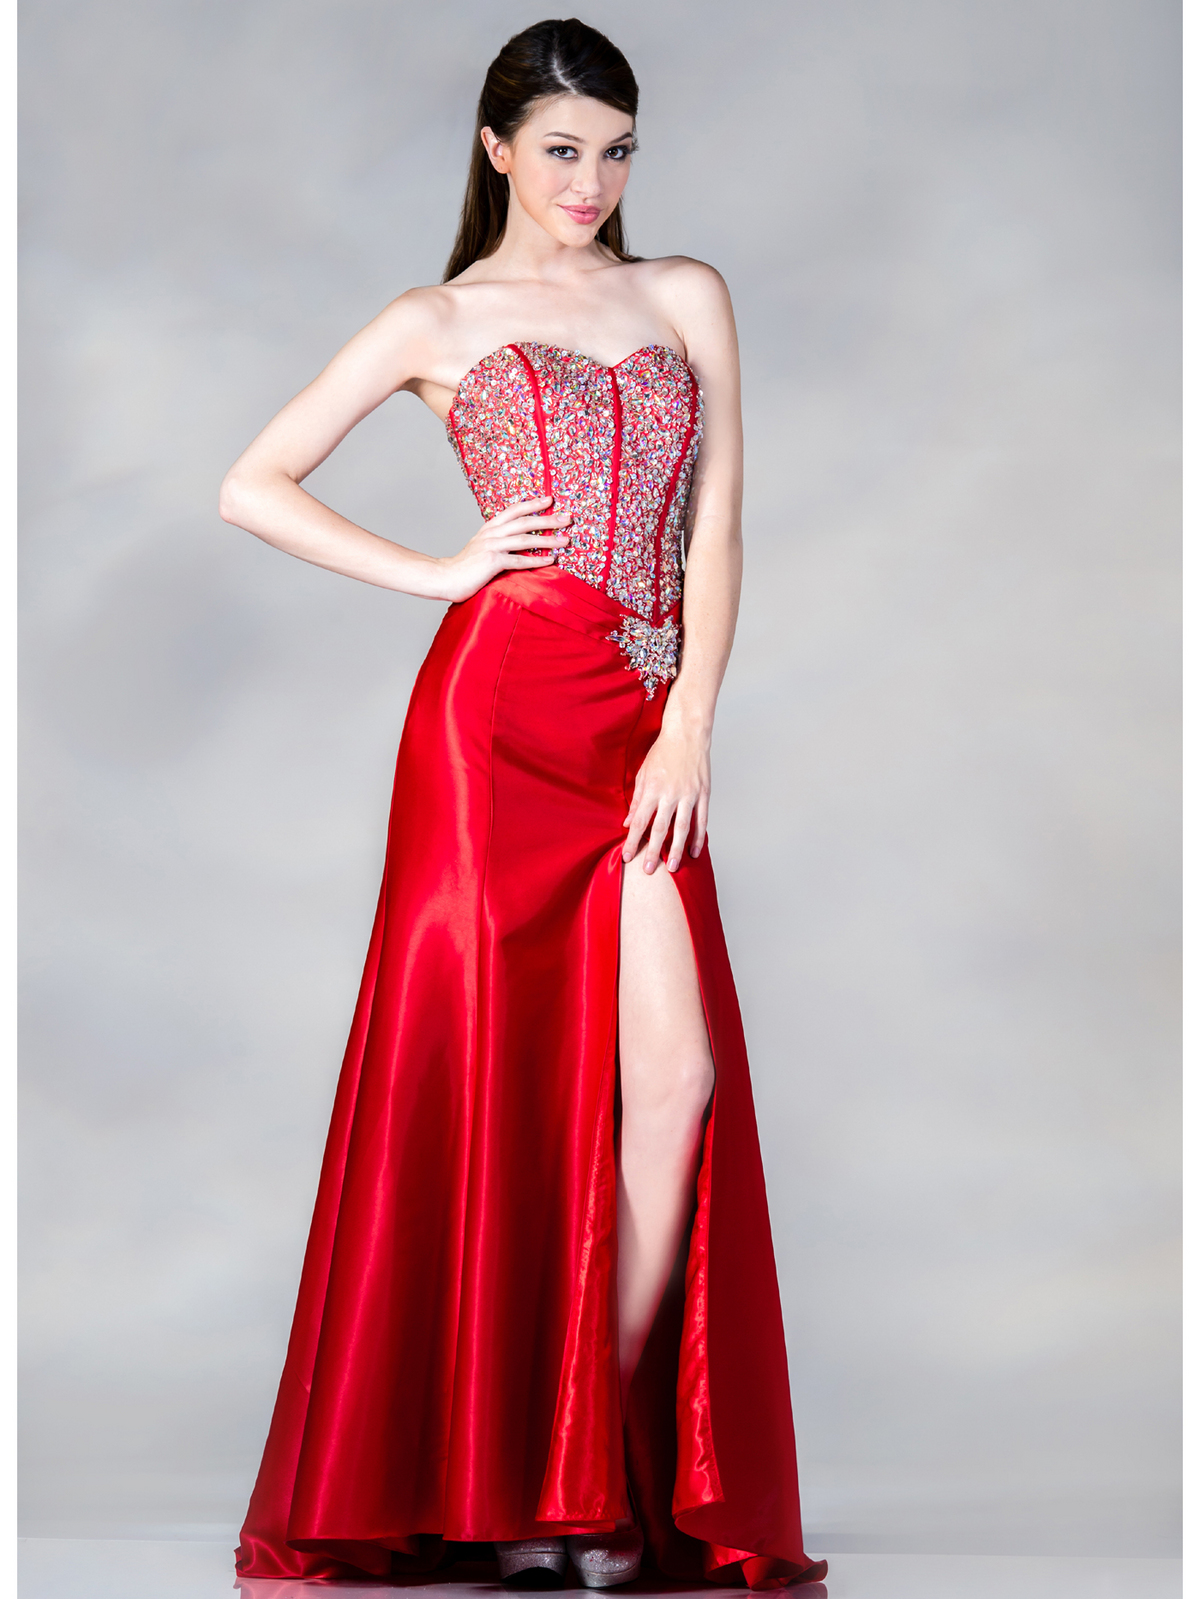 Wedding Corset Prom Dresses jeweled corset prom dress sung boutique l a jc885 red front view medium